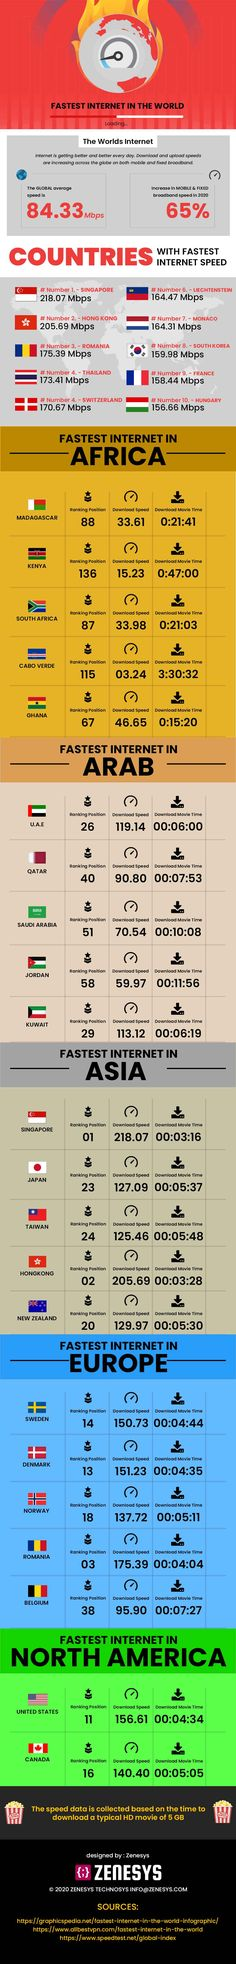 Countries With the Fastest Internet Speeds Fastest Internet Speed, Fast Internet, Everything Is Connected, Data Visualization, Infographics, Countries, Social Media, Life, 21st Century